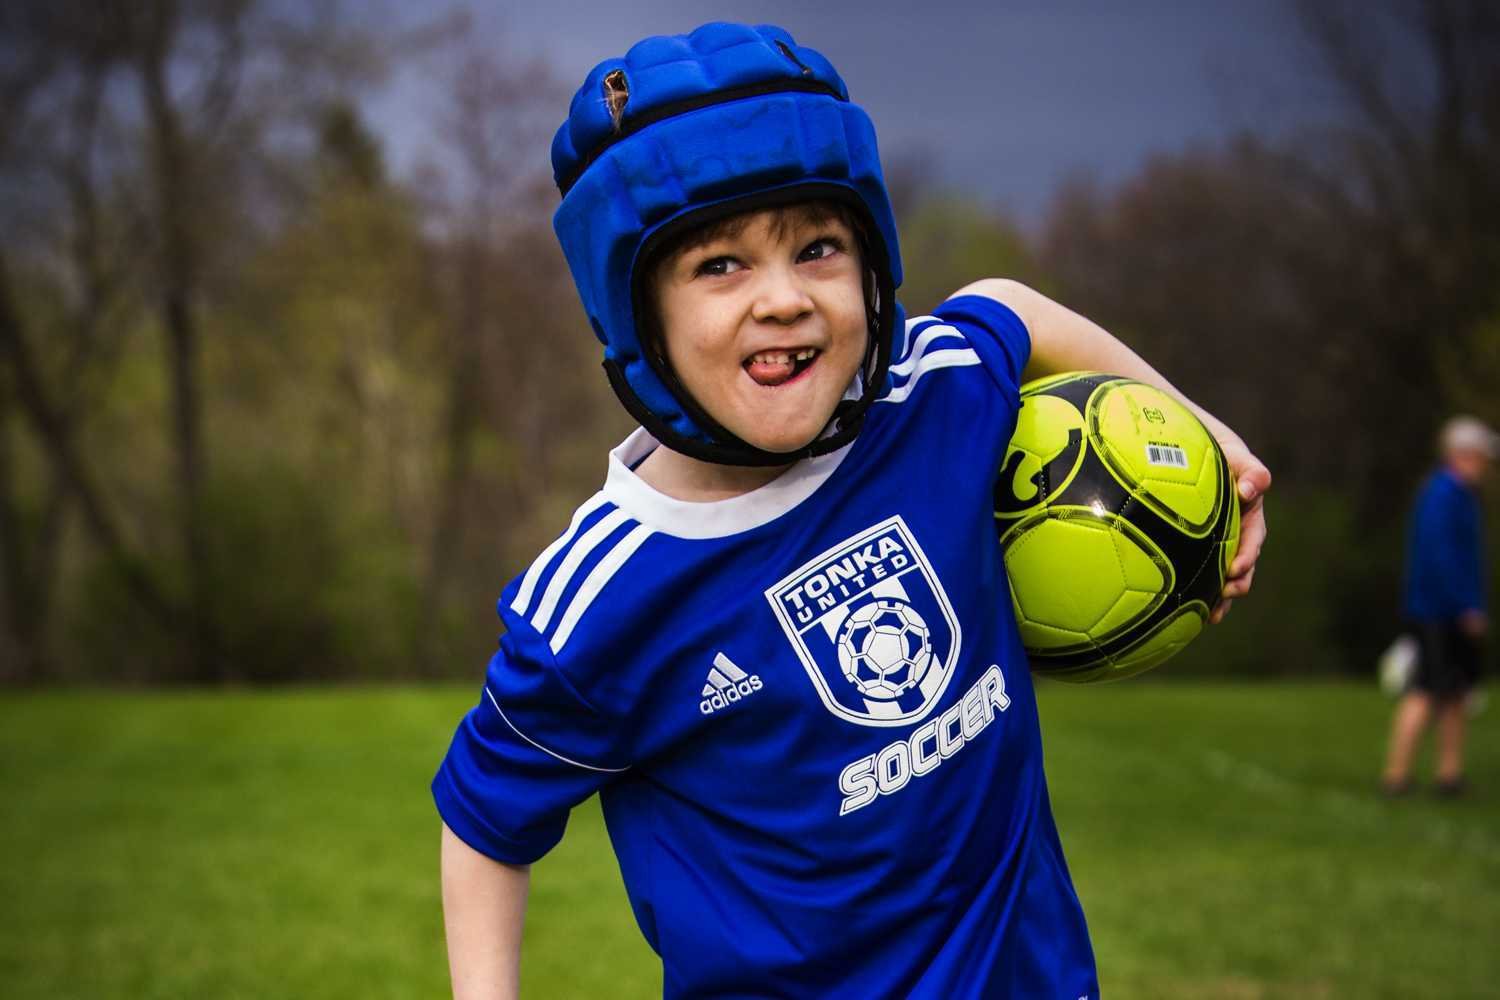 Gillette patient Ezra holds and runs with soccer ball